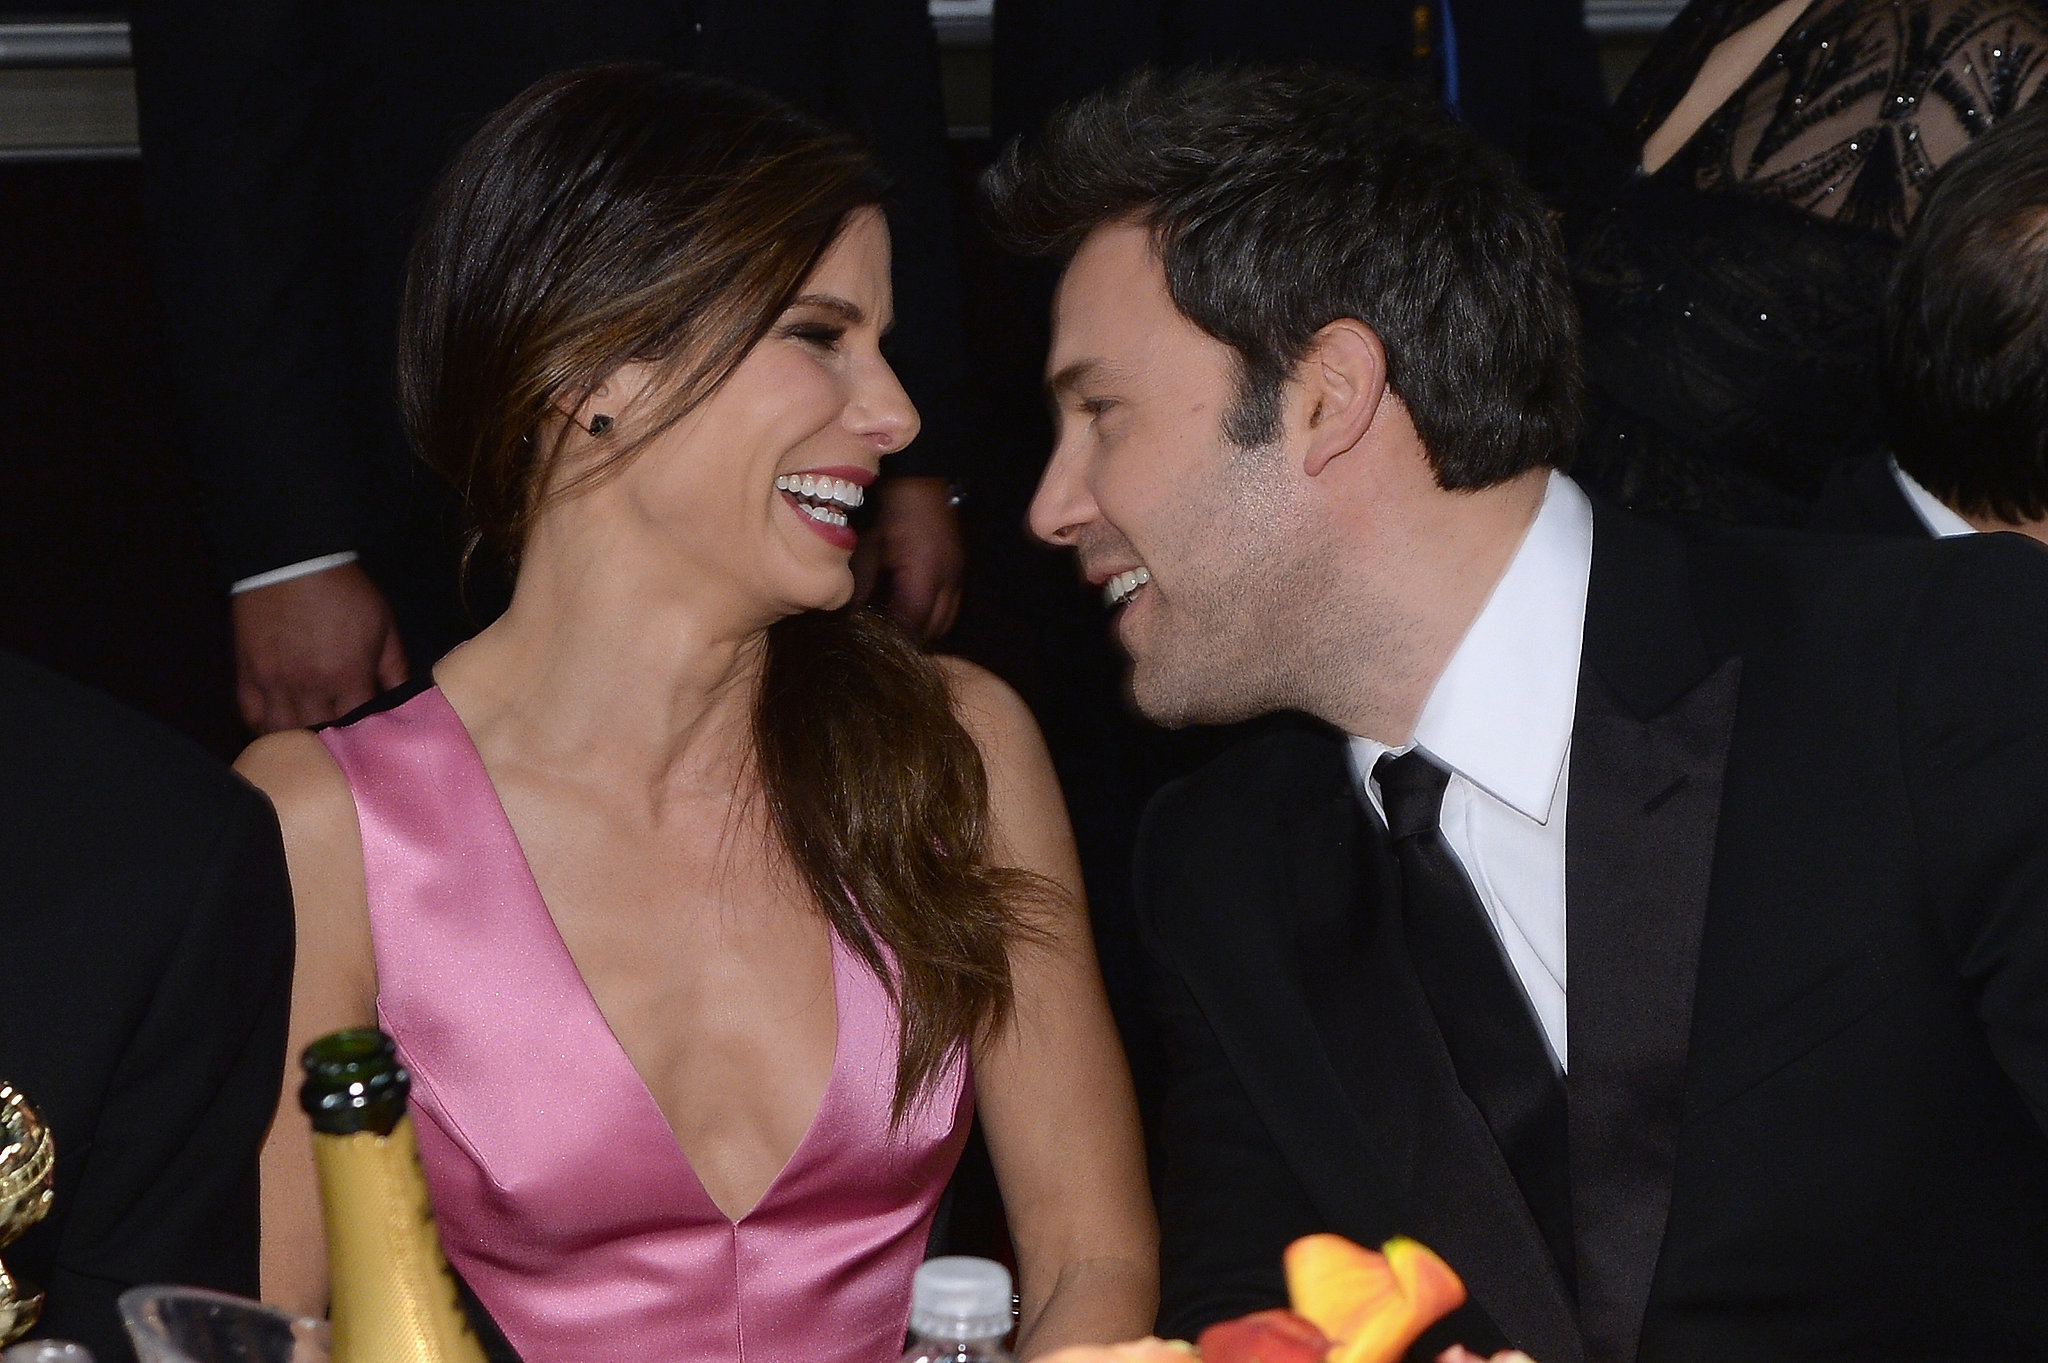 Sandra Bullock and Ben Affleck locked eyes and laughed in the middle of the show.  Source: Larry Busacca/NBC/NBCU Photo Bank/NBC